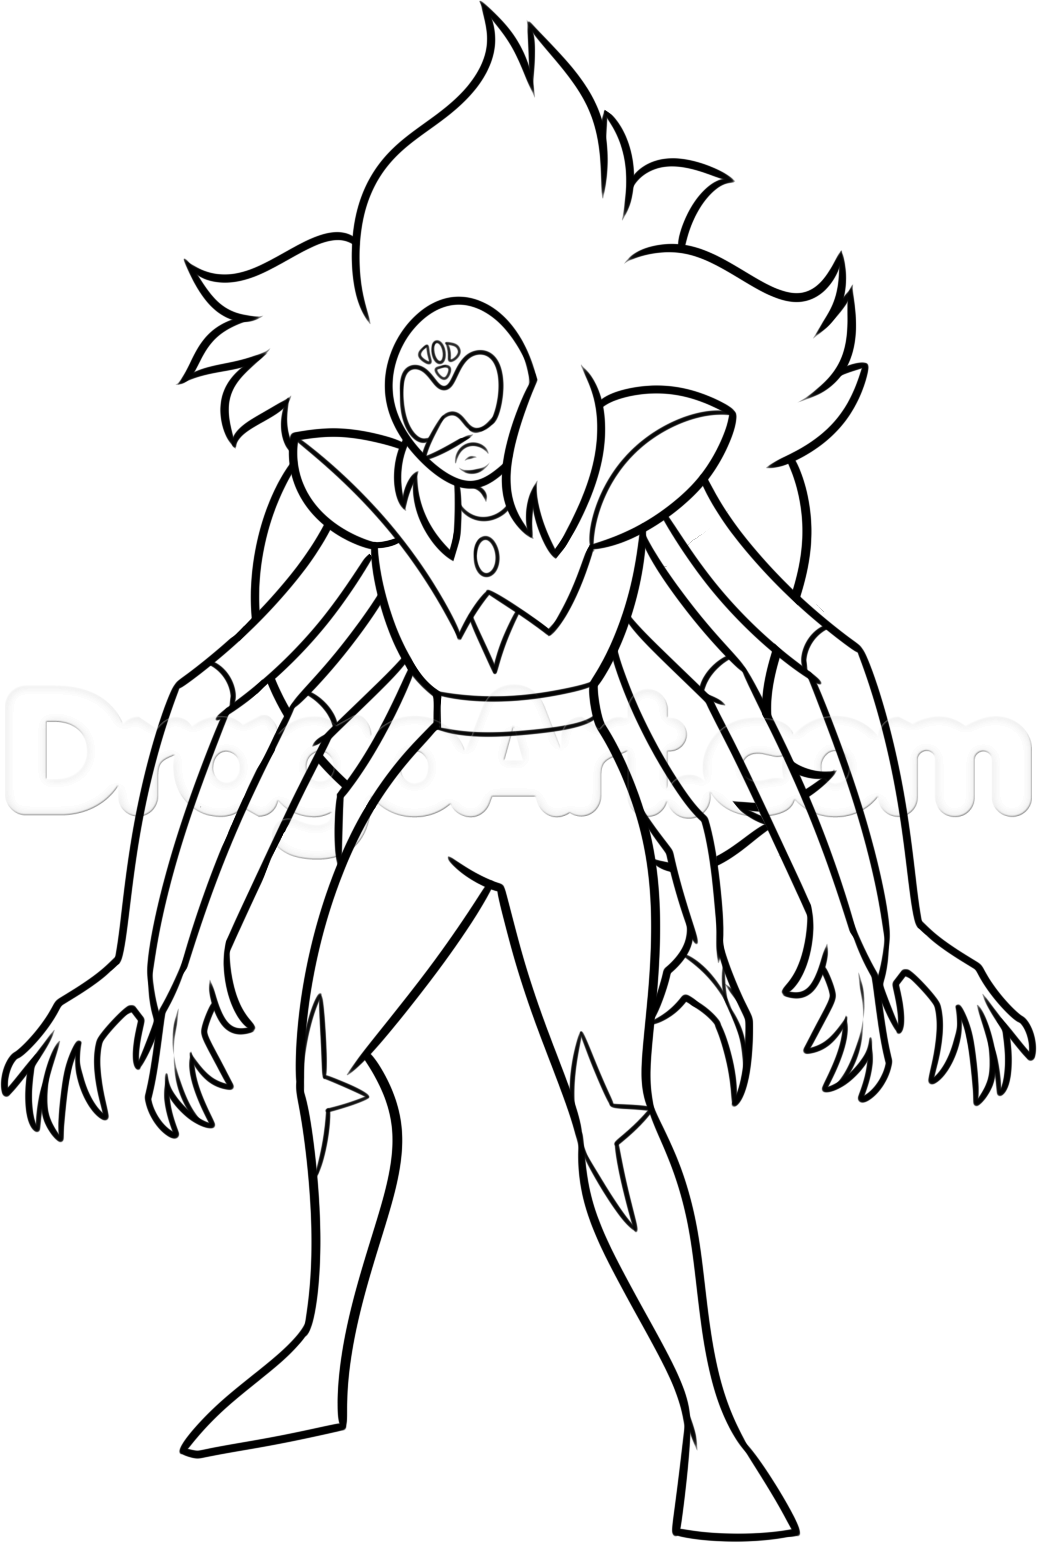 Alexandrite Steven Universe Character Coloring Pages Steven Universe Characters Steven Universe Coloring Pages